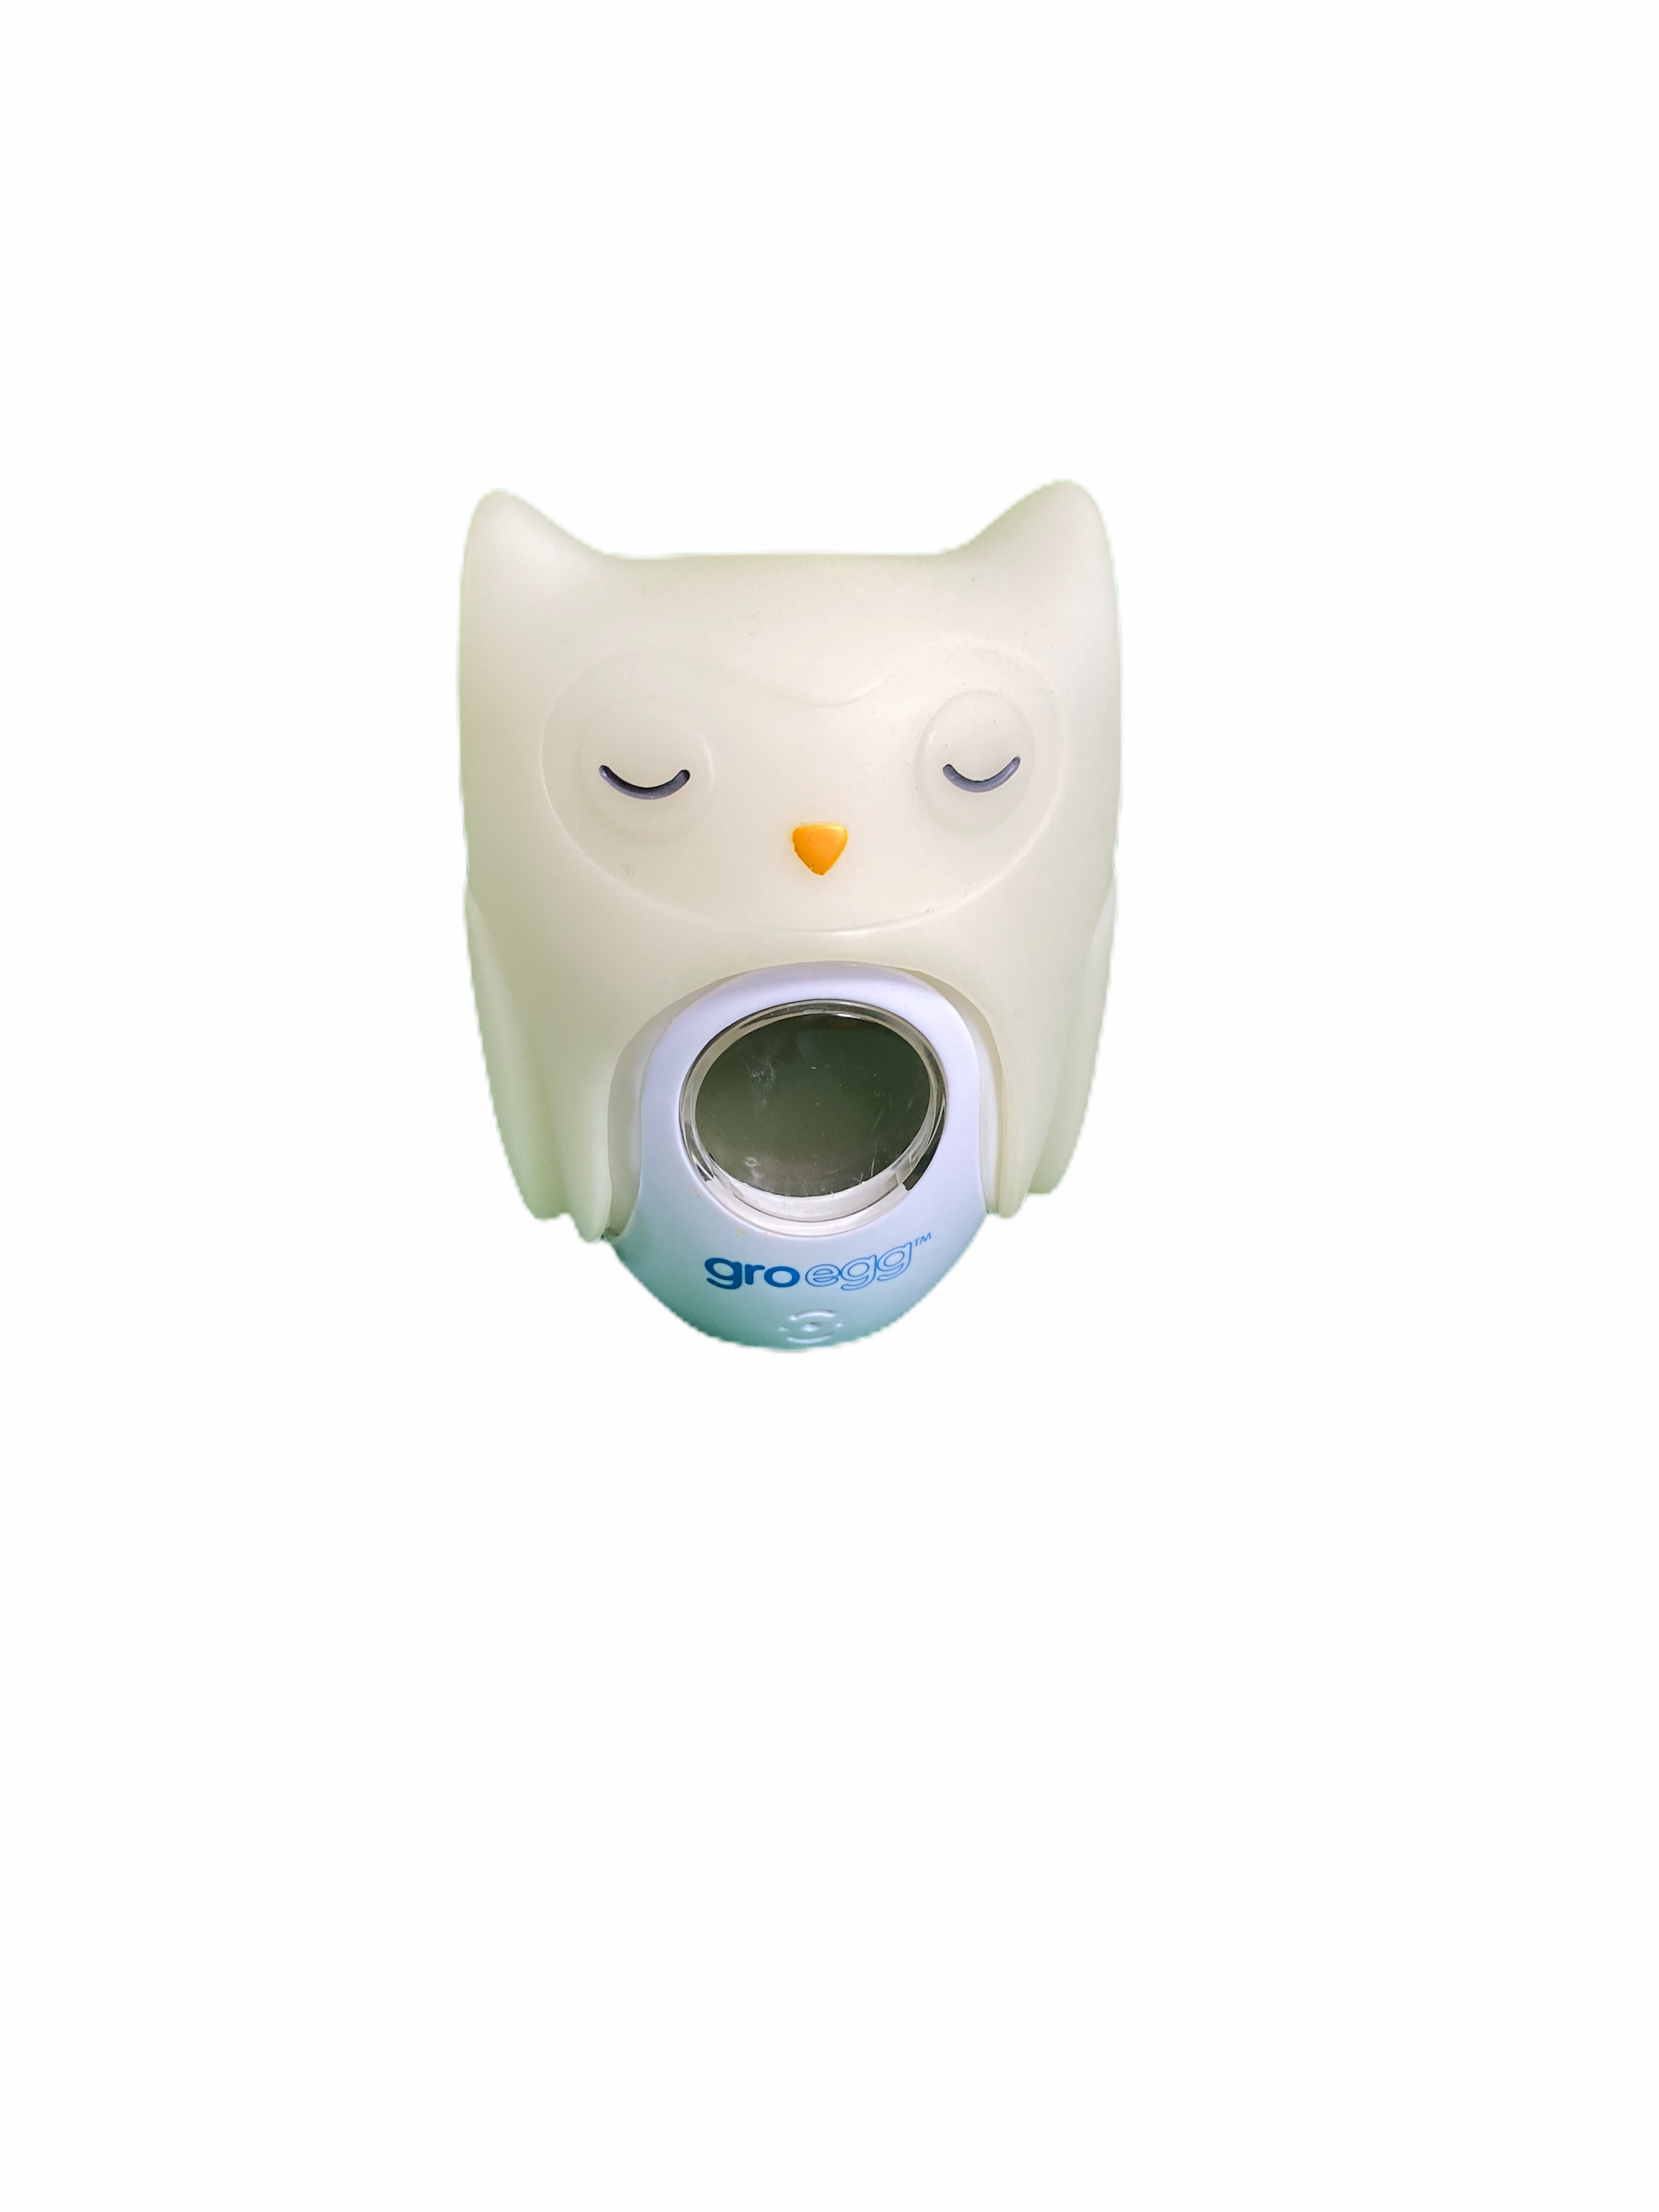 Grow Egg Owl Room Thermometer